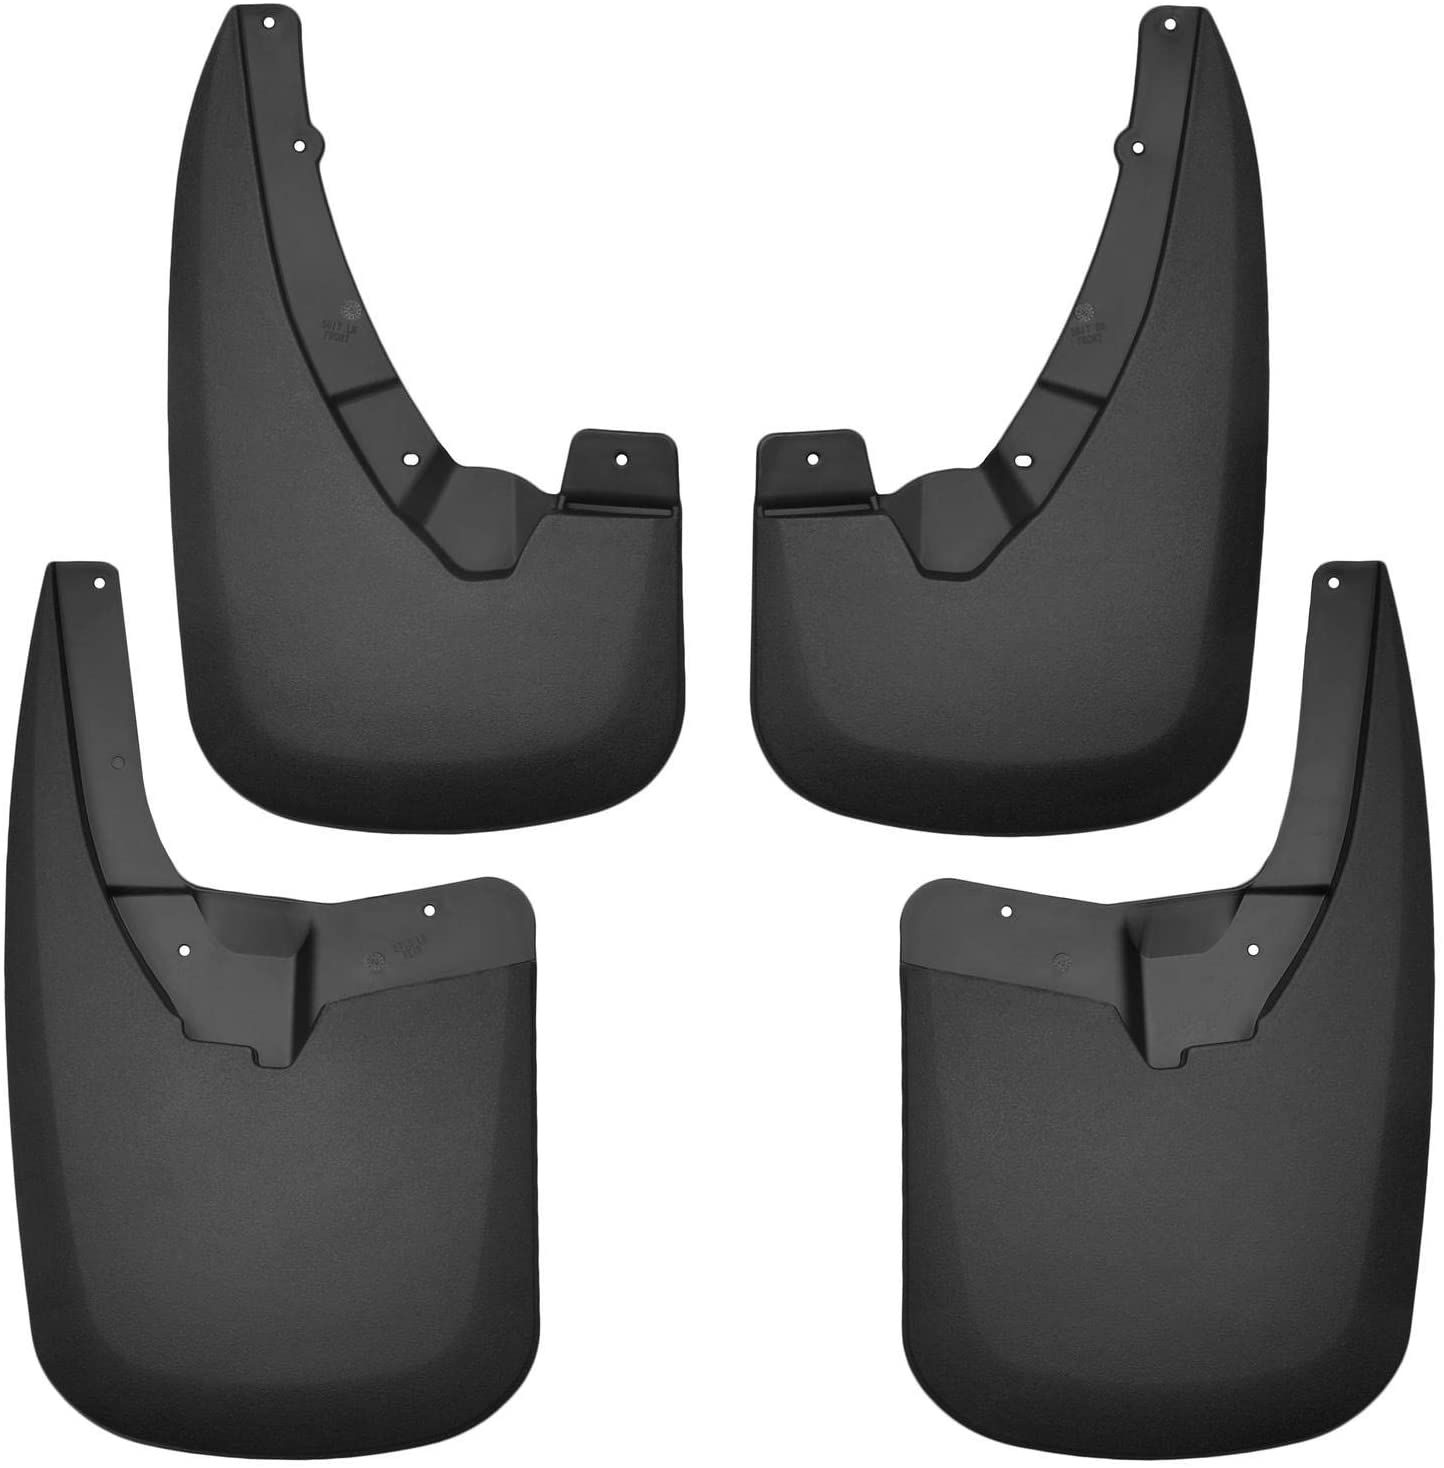 57211 Husky Liners Mud Flaps Set of 2 Rear Driver /& Passenger Side New Pair